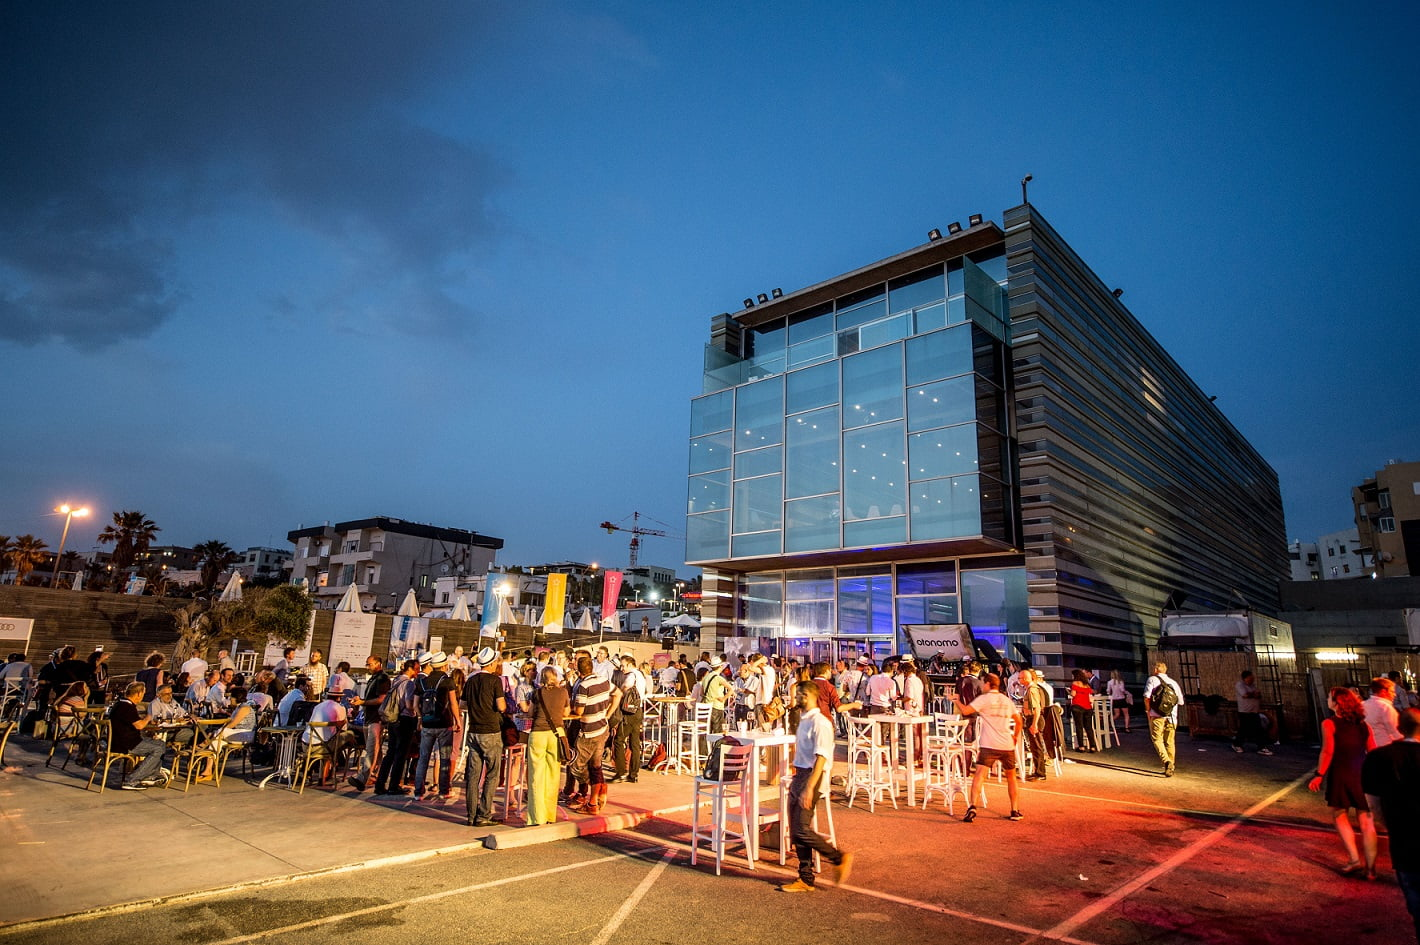 The EcoMotion conference welcomed 3,000 participants from all the world to the Port of Tel Aviv. Photo via Asaf Kliger